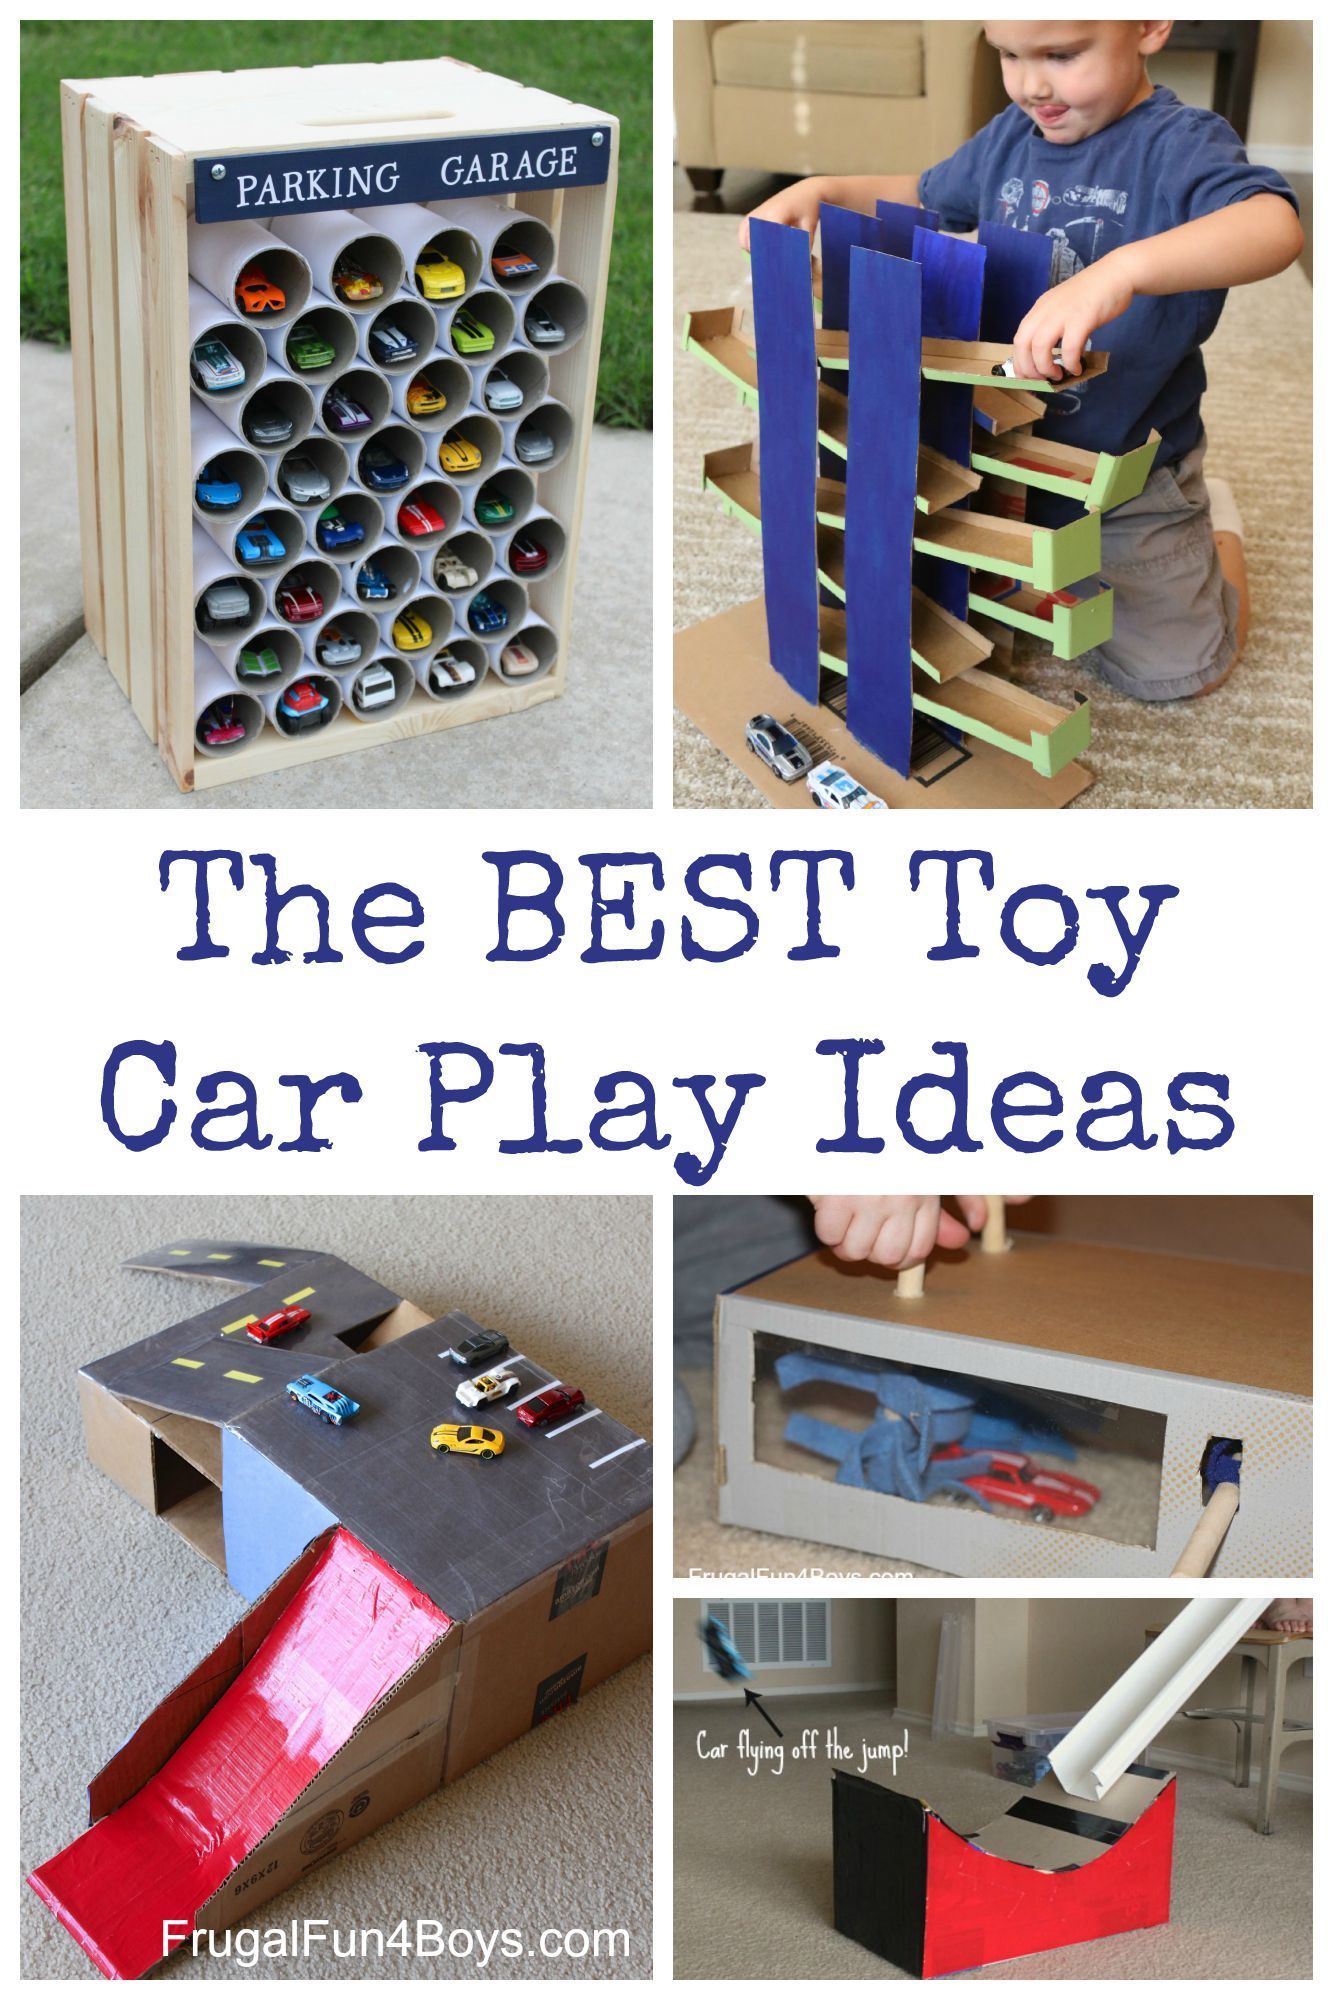 Simple things to make for toy cars out of cardboard boxes etc. Love these play ideas for Hot Wheels or Matchbox cars!  sc 1 st  Pinterest & The BEST Toy Car Play Ideas | Pinterest | Matchbox cars Play ideas ...